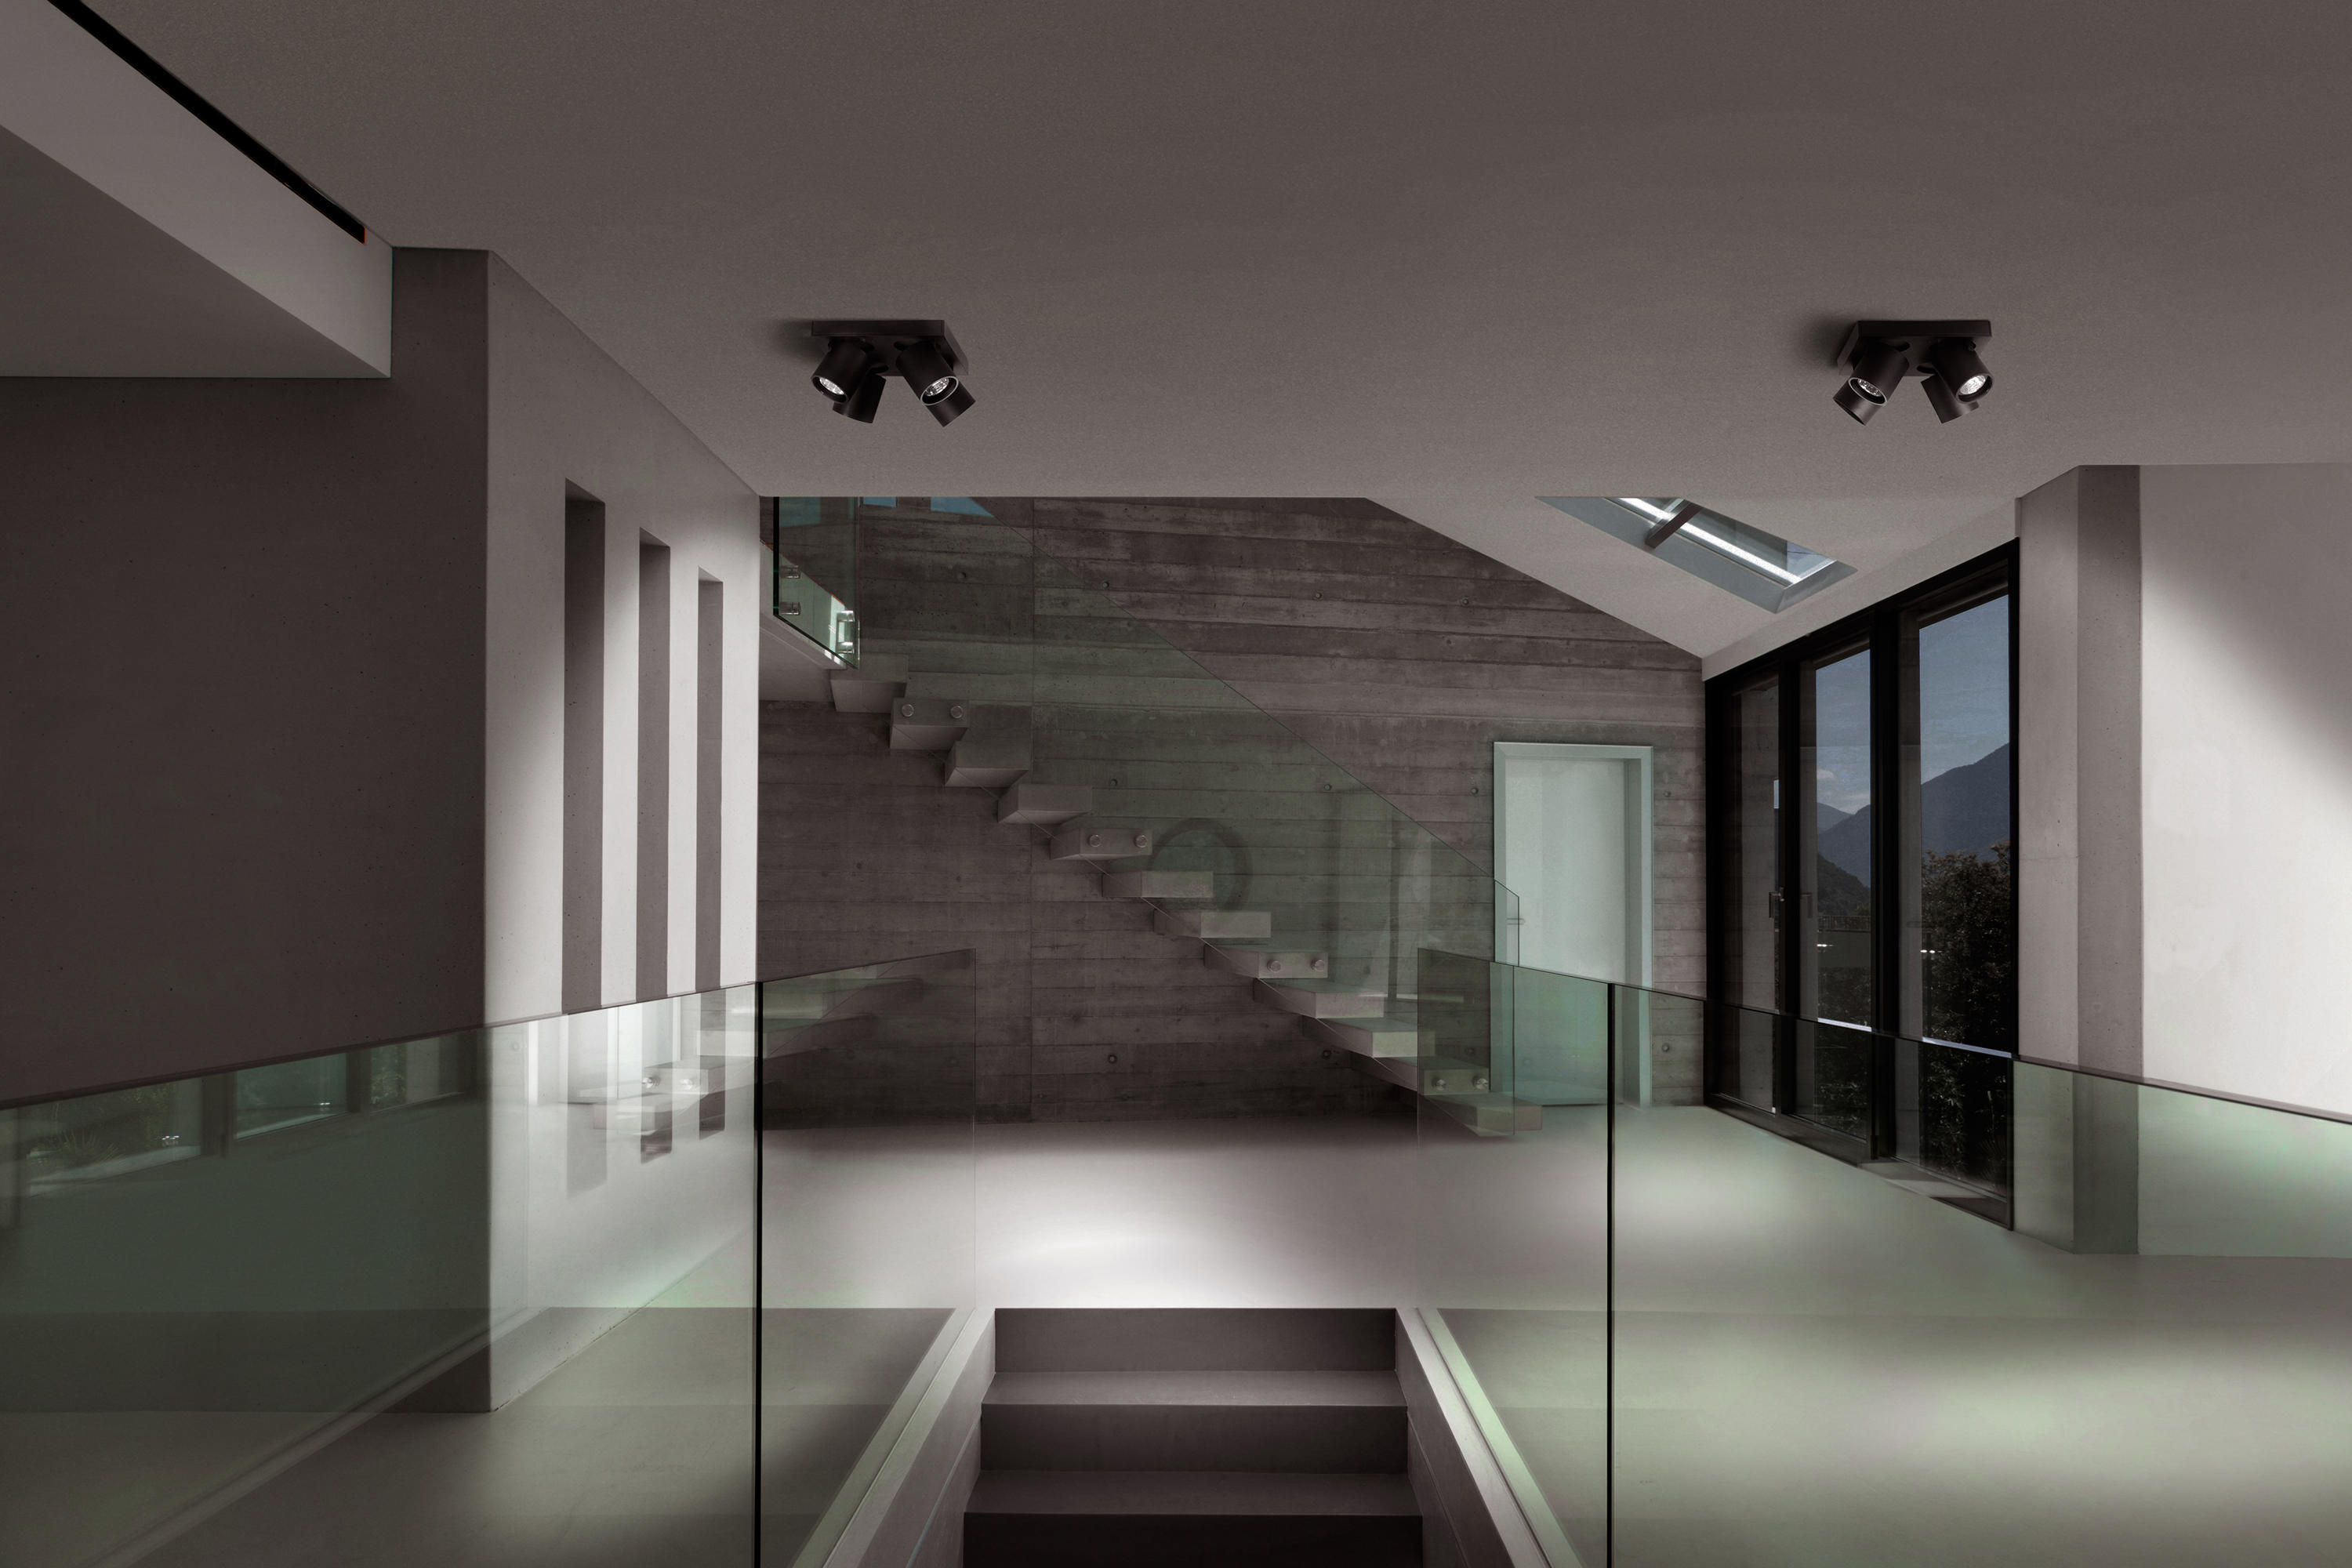 Focus 1 Ceiling Mounted Spotlights From Light Point